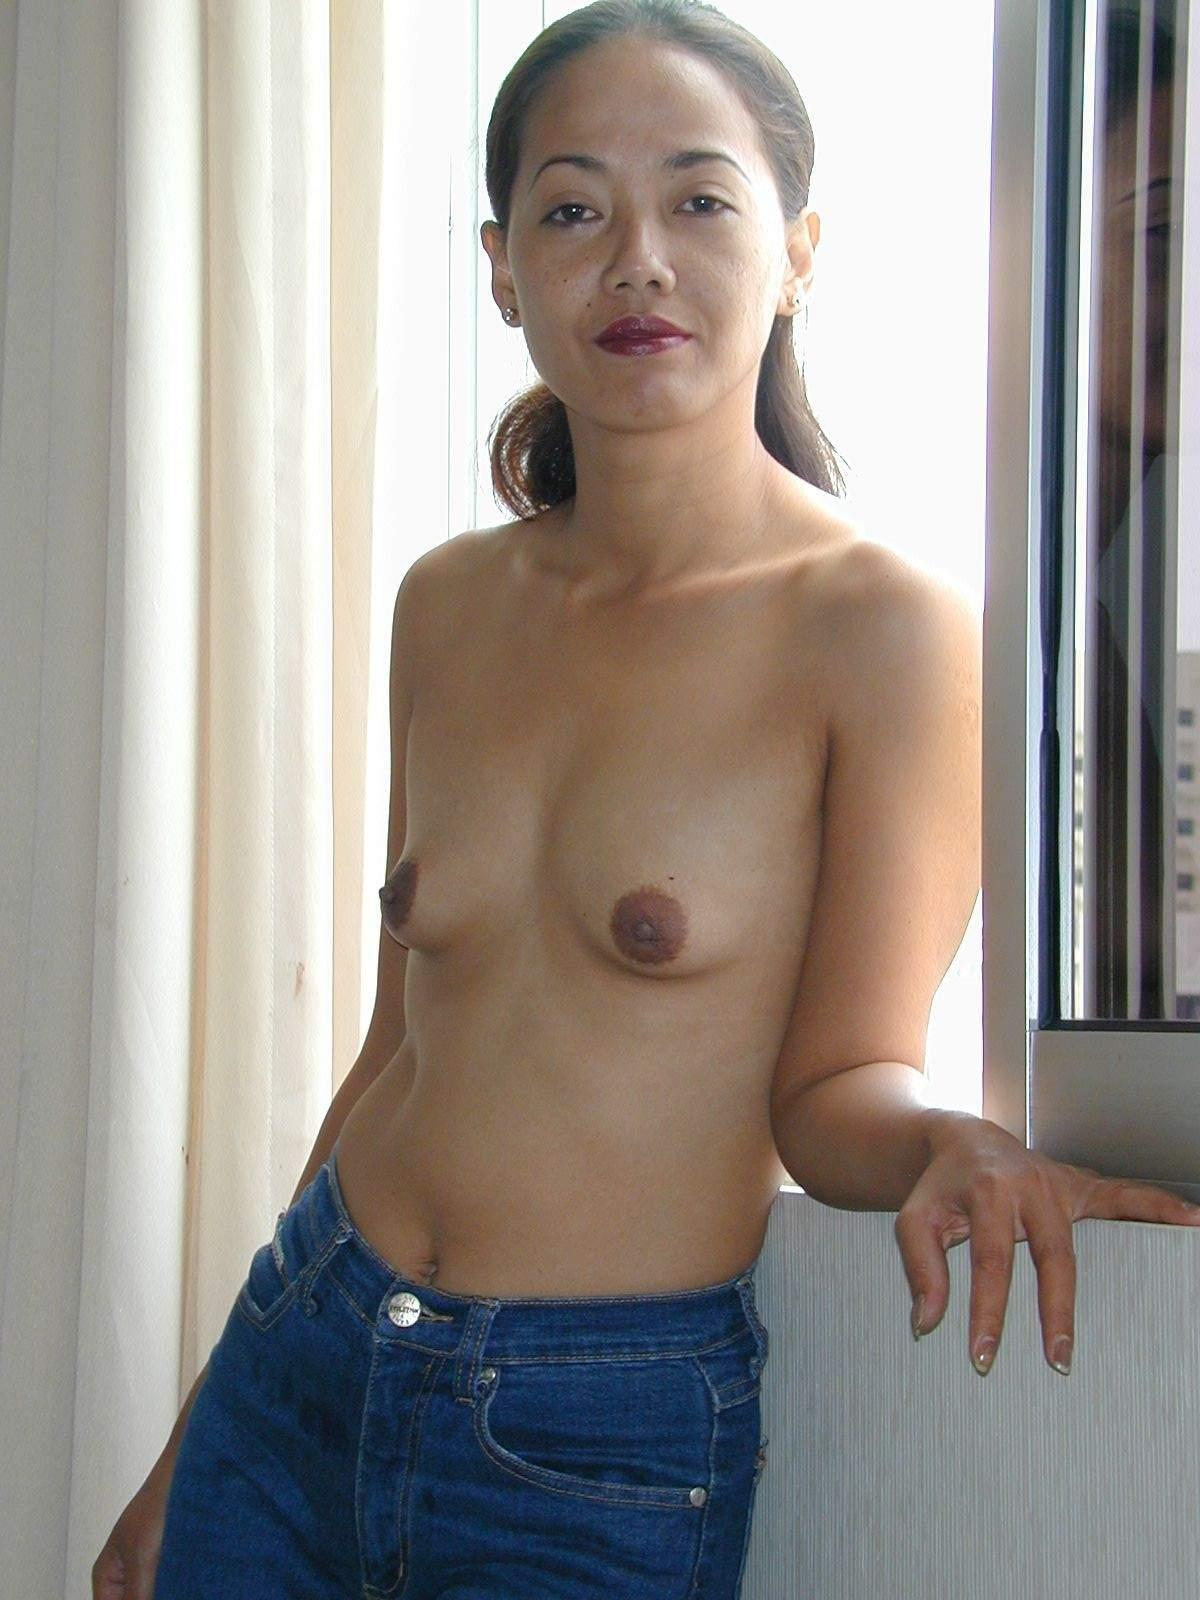 Archive Of The Sub Reddit Dedicated To Mature Asian Women -9877